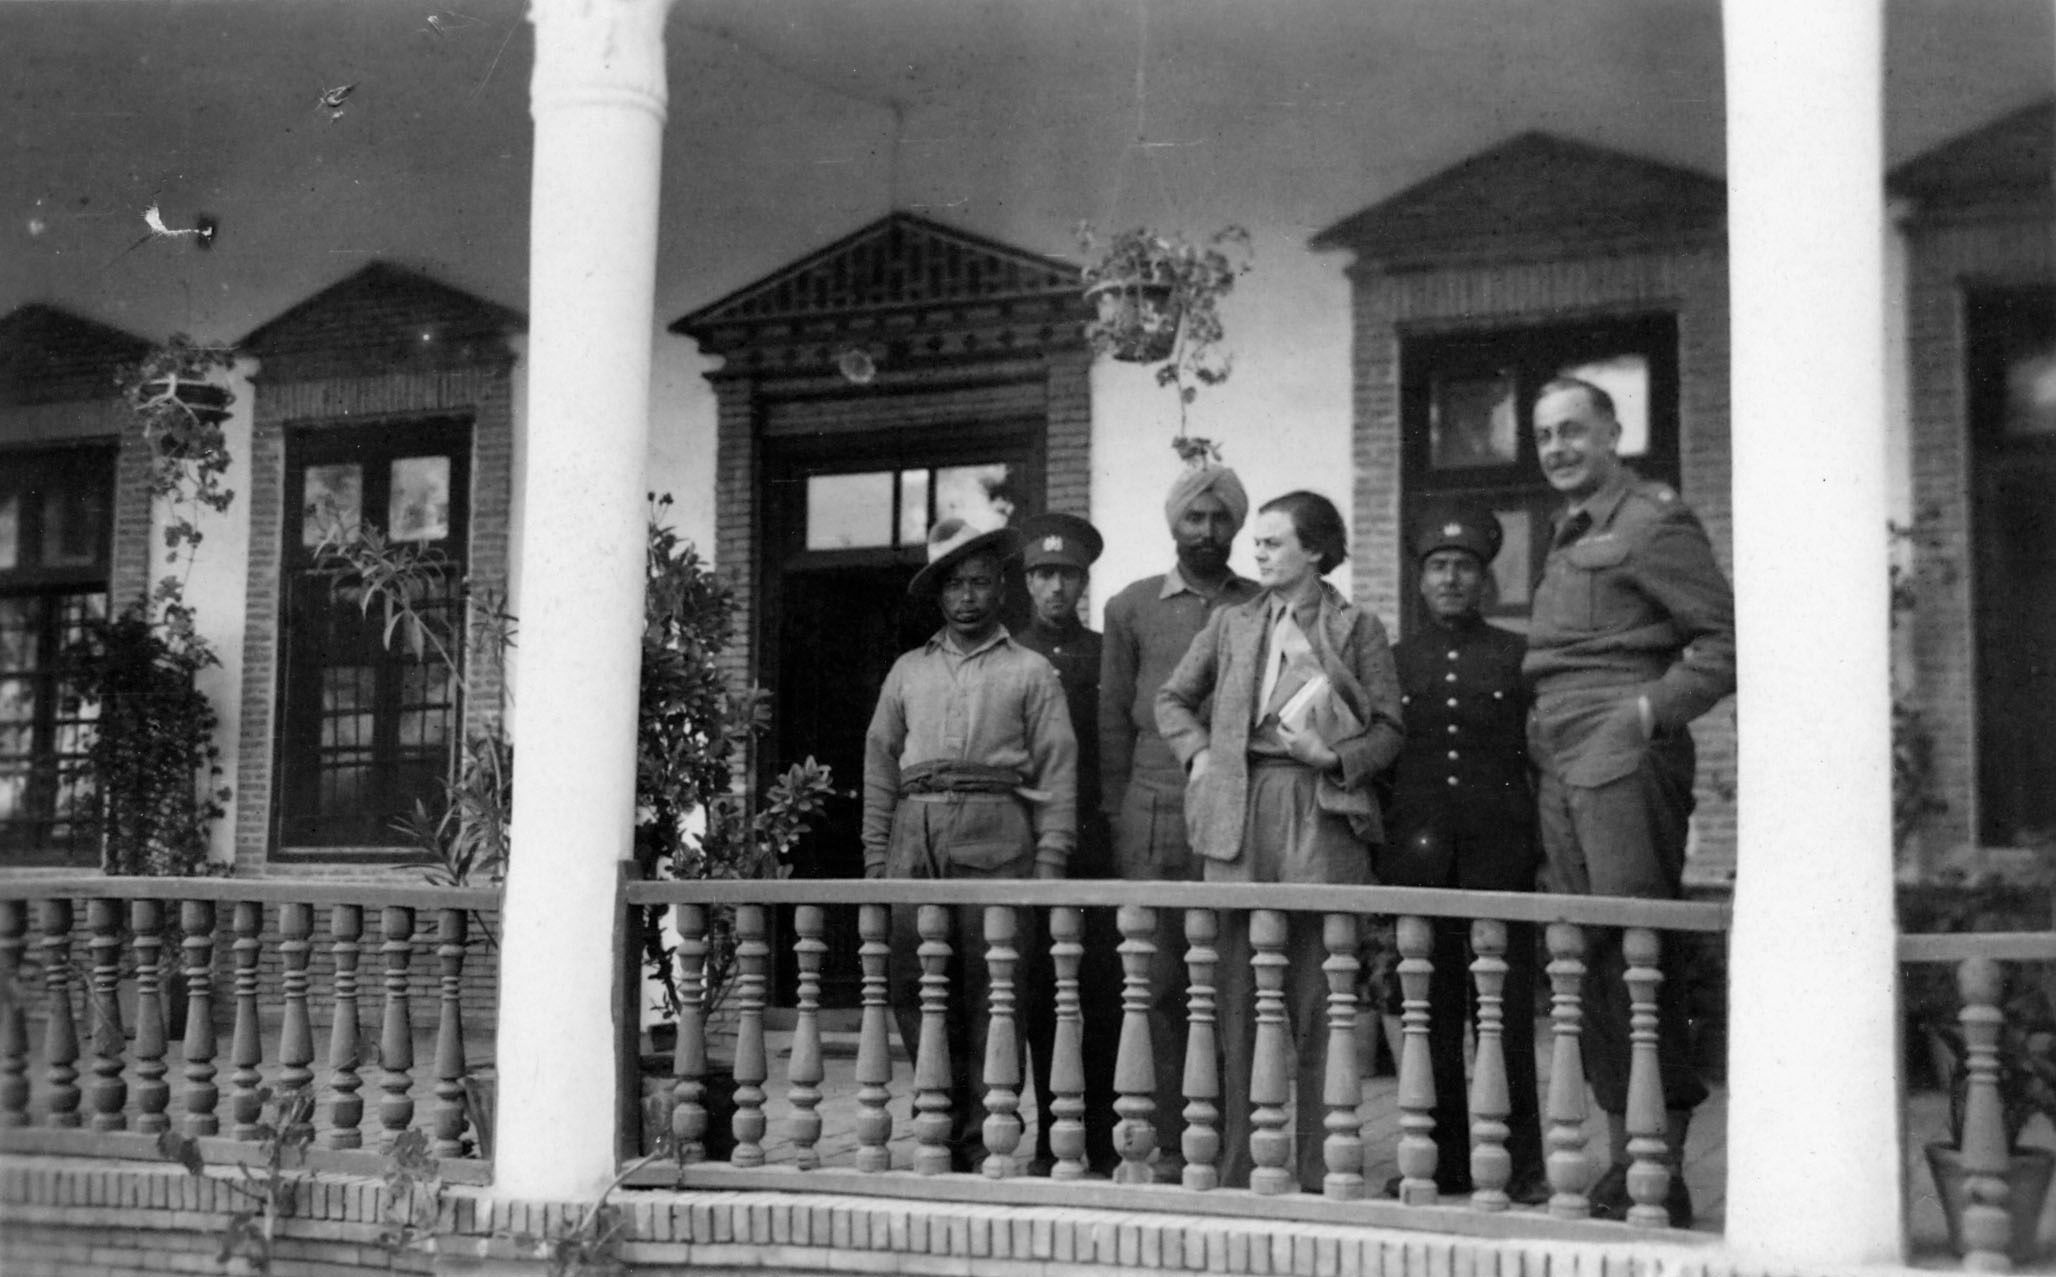 Clare Hollingworth on balcony of the British Mission in Tabriz, northern Iran, after the joint Soviet/British invasion of Iran in 1941.